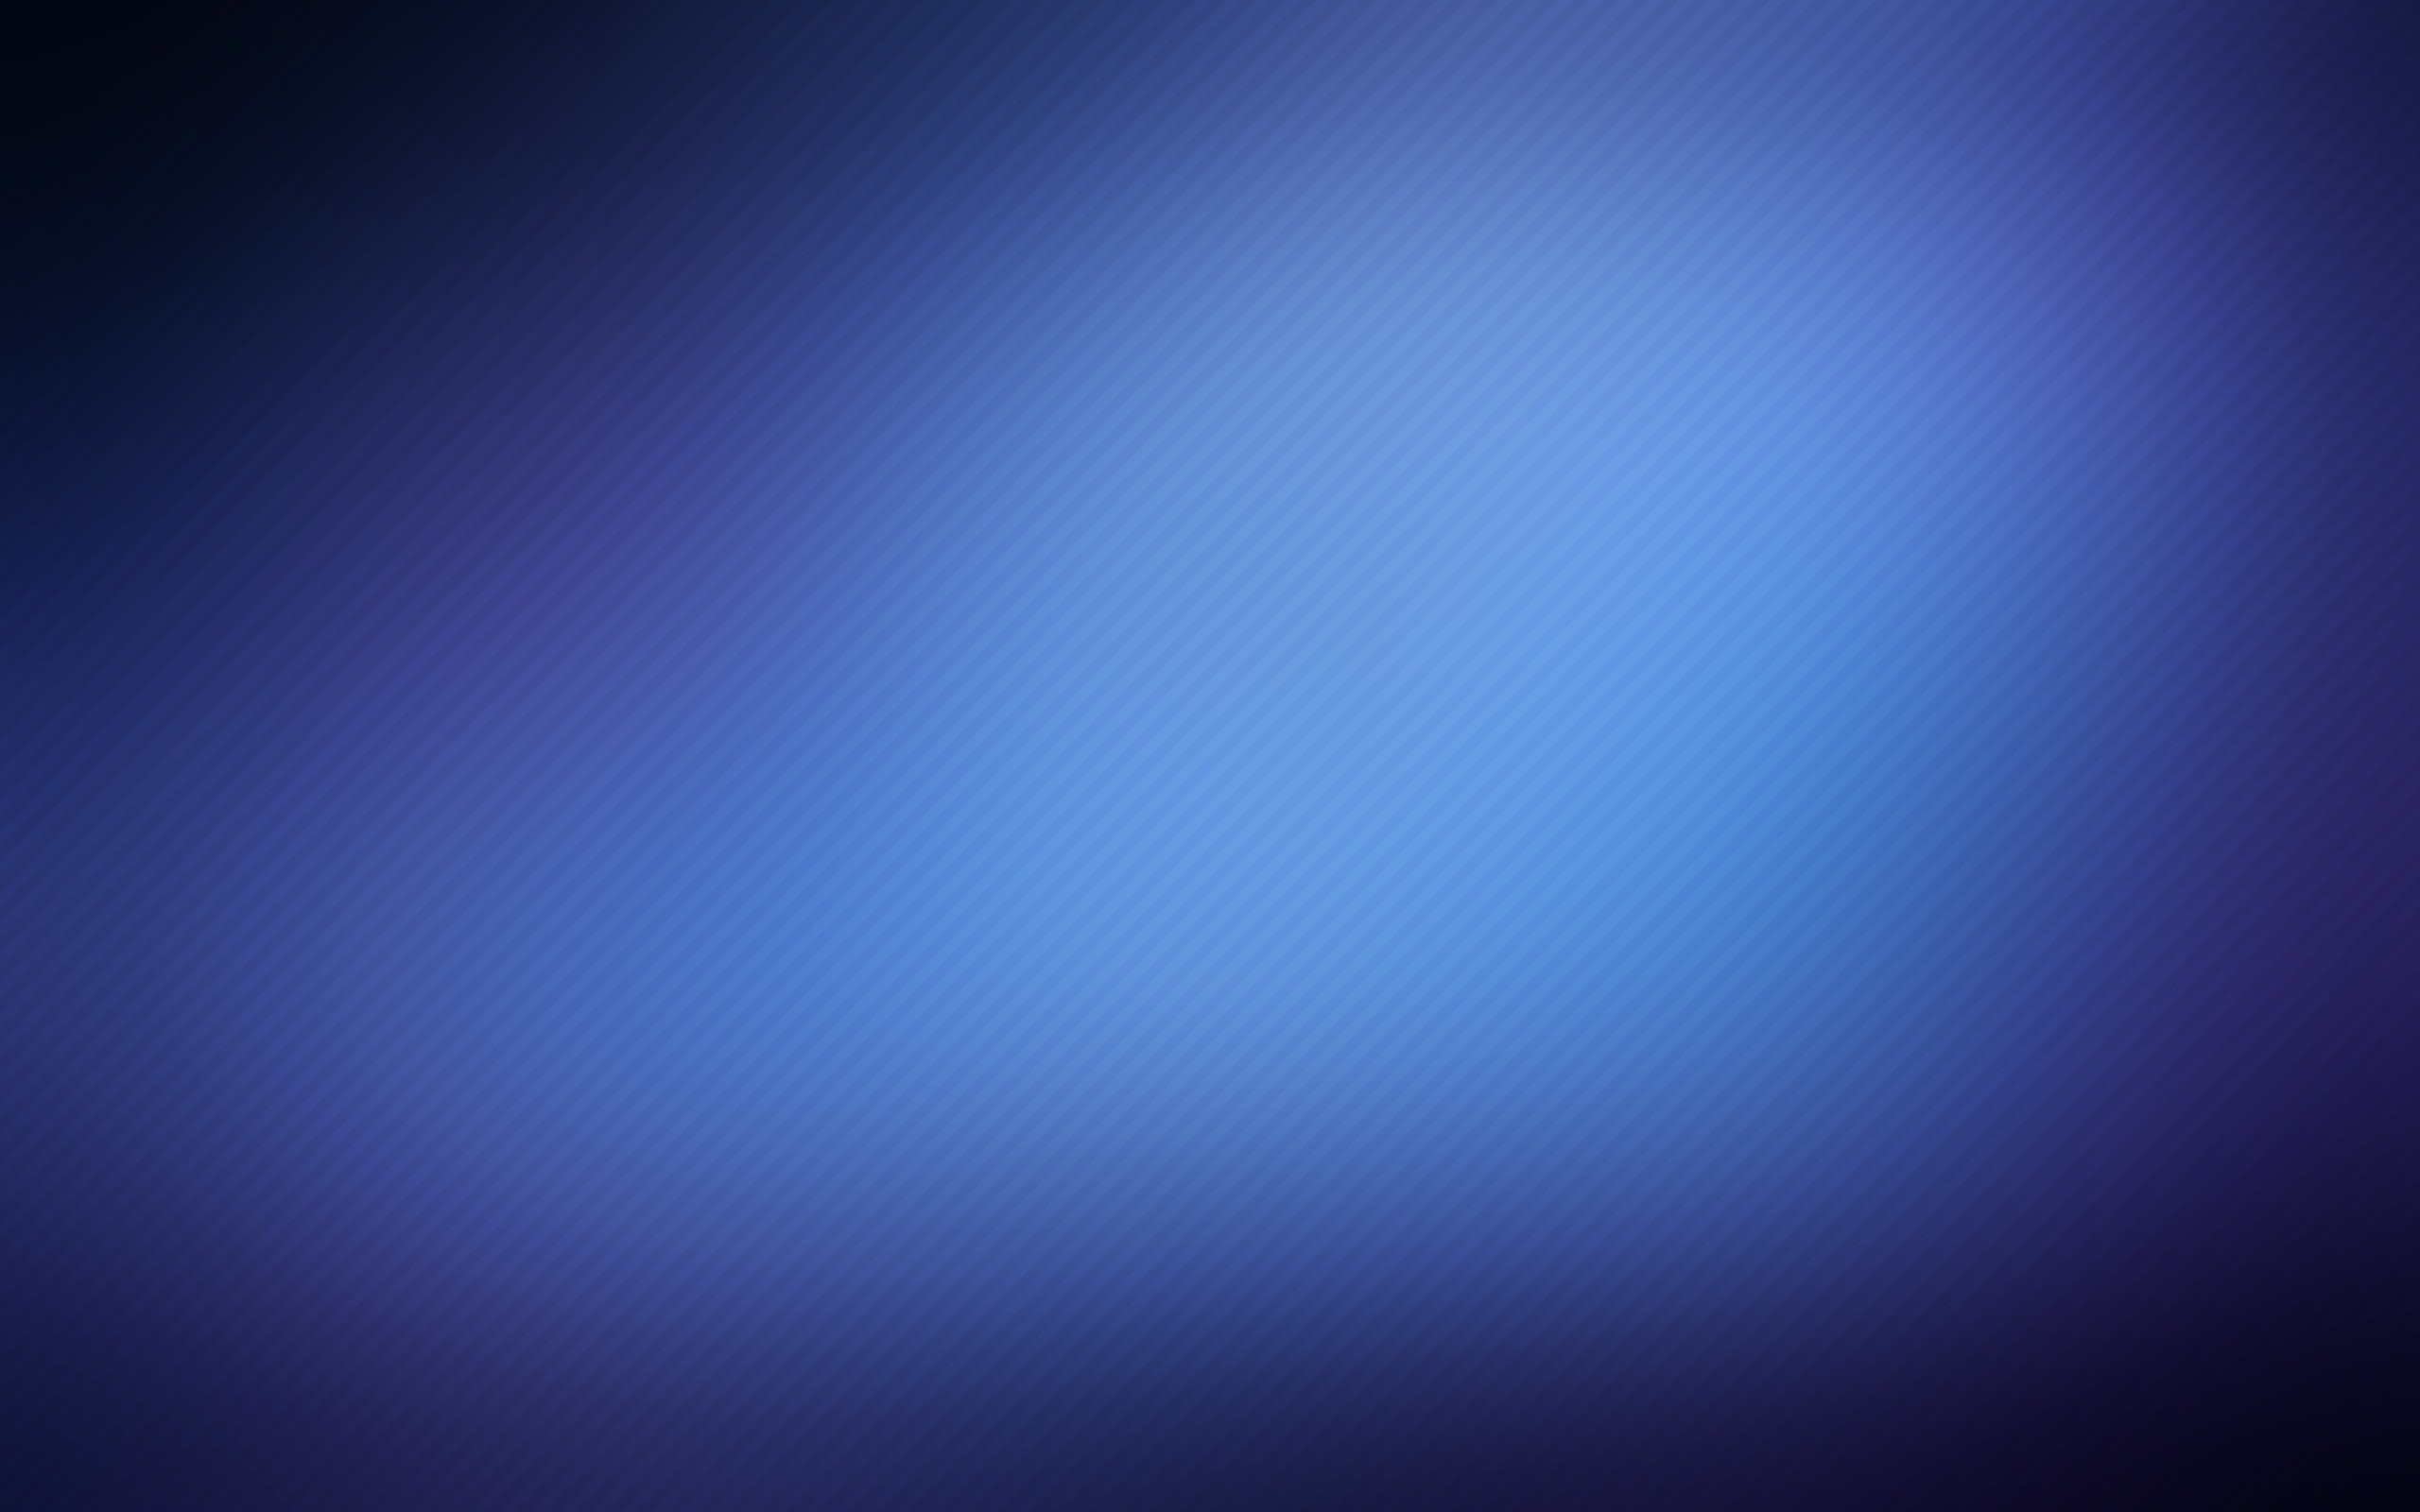 Displaying 10 Images For   Dark Blue Plain Backgrounds 2560x1600